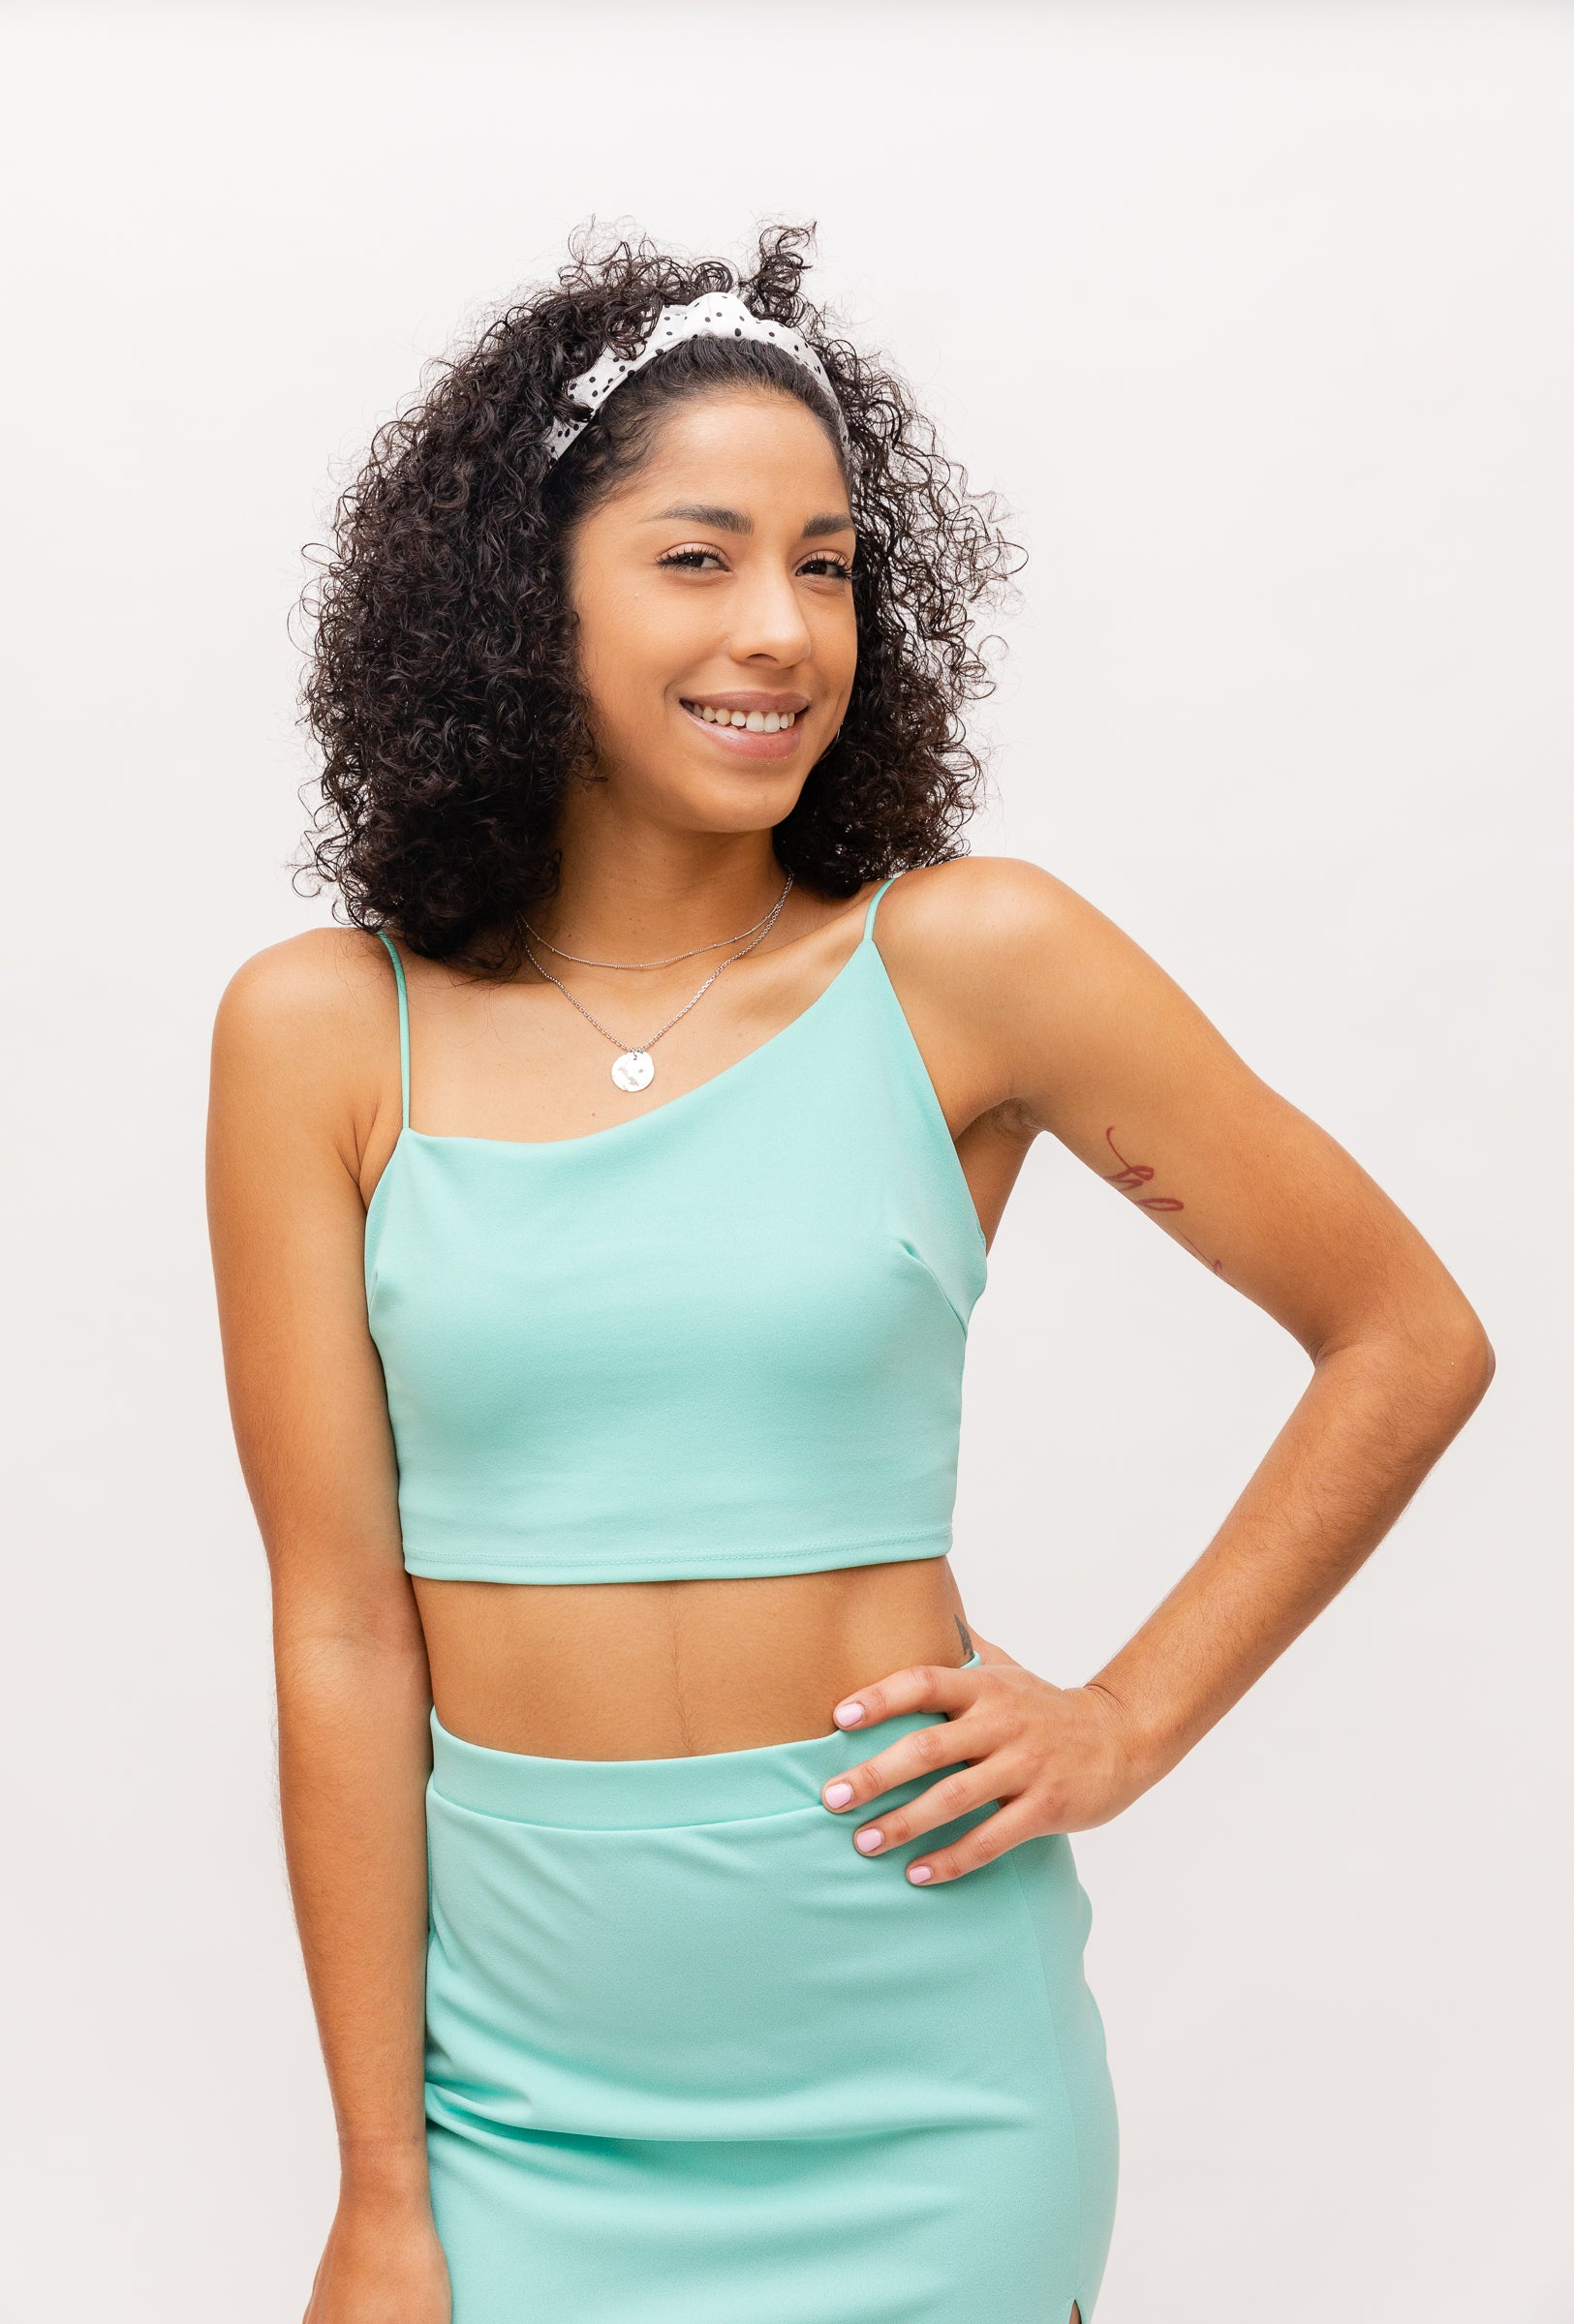 This spring top has bungee straps with one main strap that goes across the neckline asymmetrically on its fitted and cropped bodice.